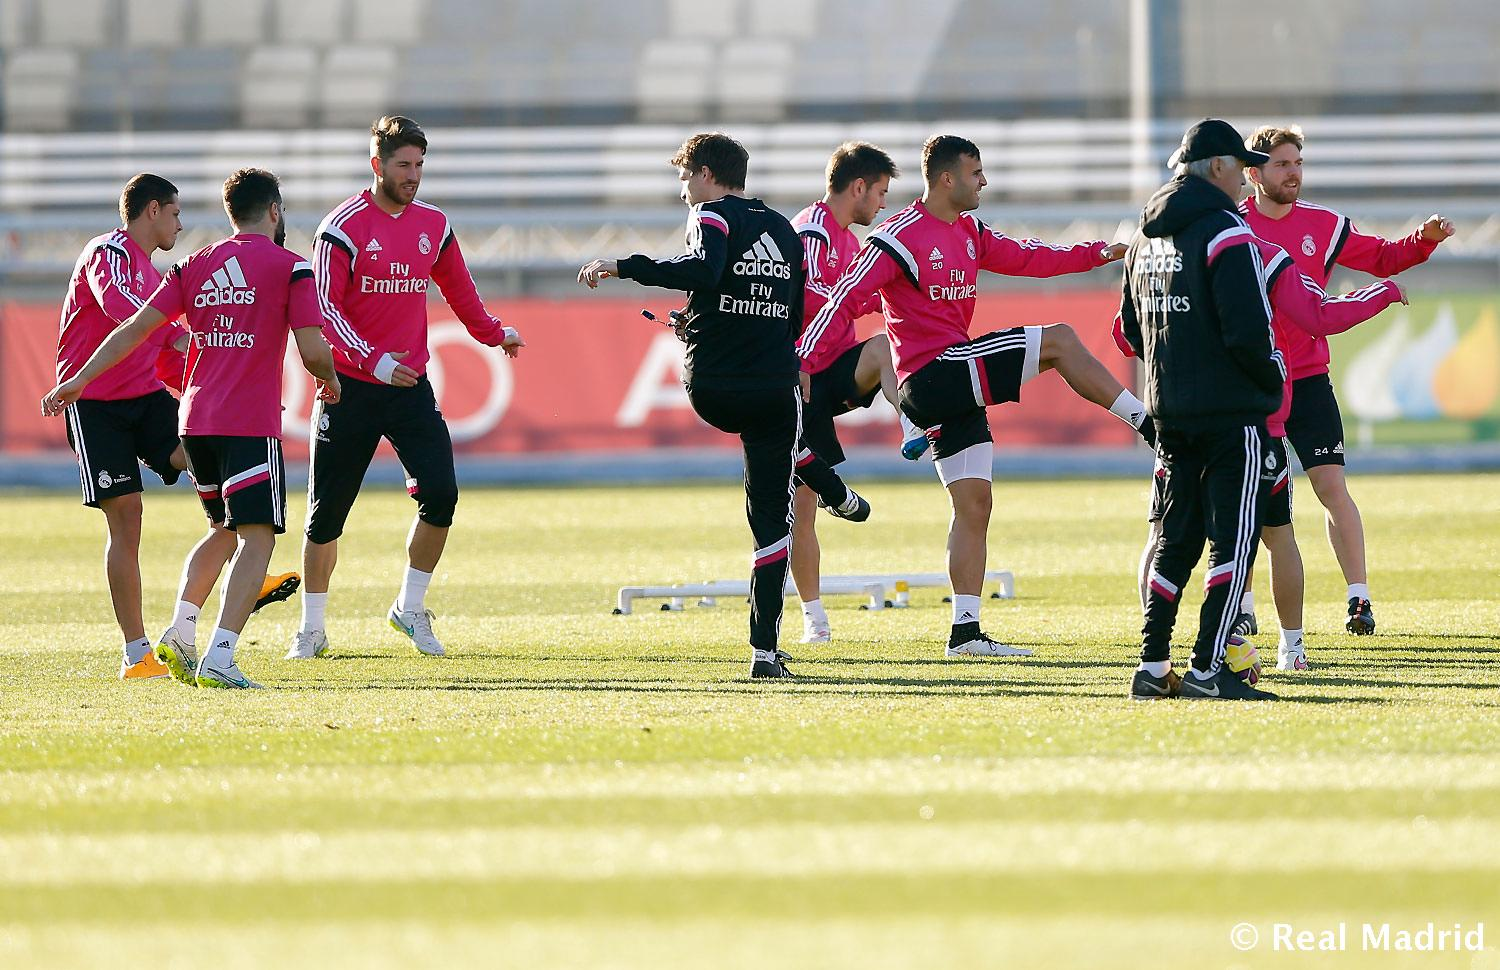 Real Madrid - Entrenamiento del Real Madrid - 03-01-2015